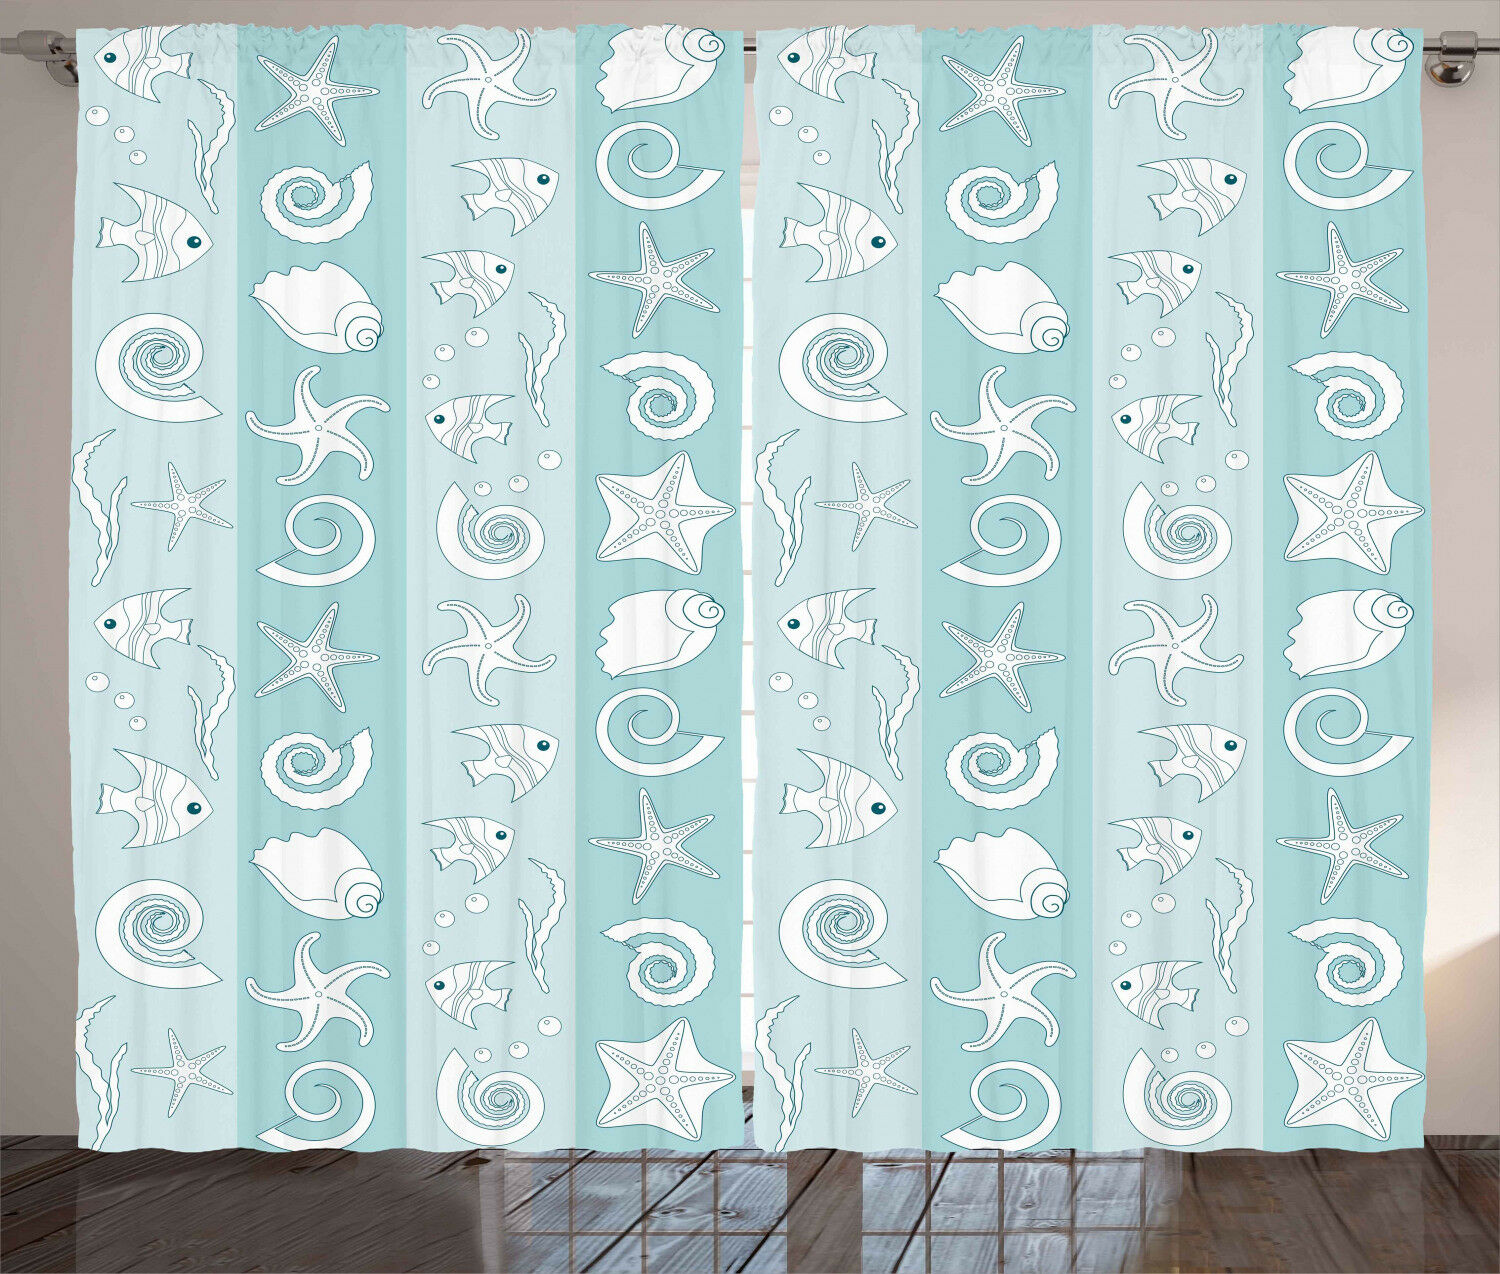 Nautical Curtains Sea Animals and Shells Window Drapes 2 Panel Set 108x63 Inches